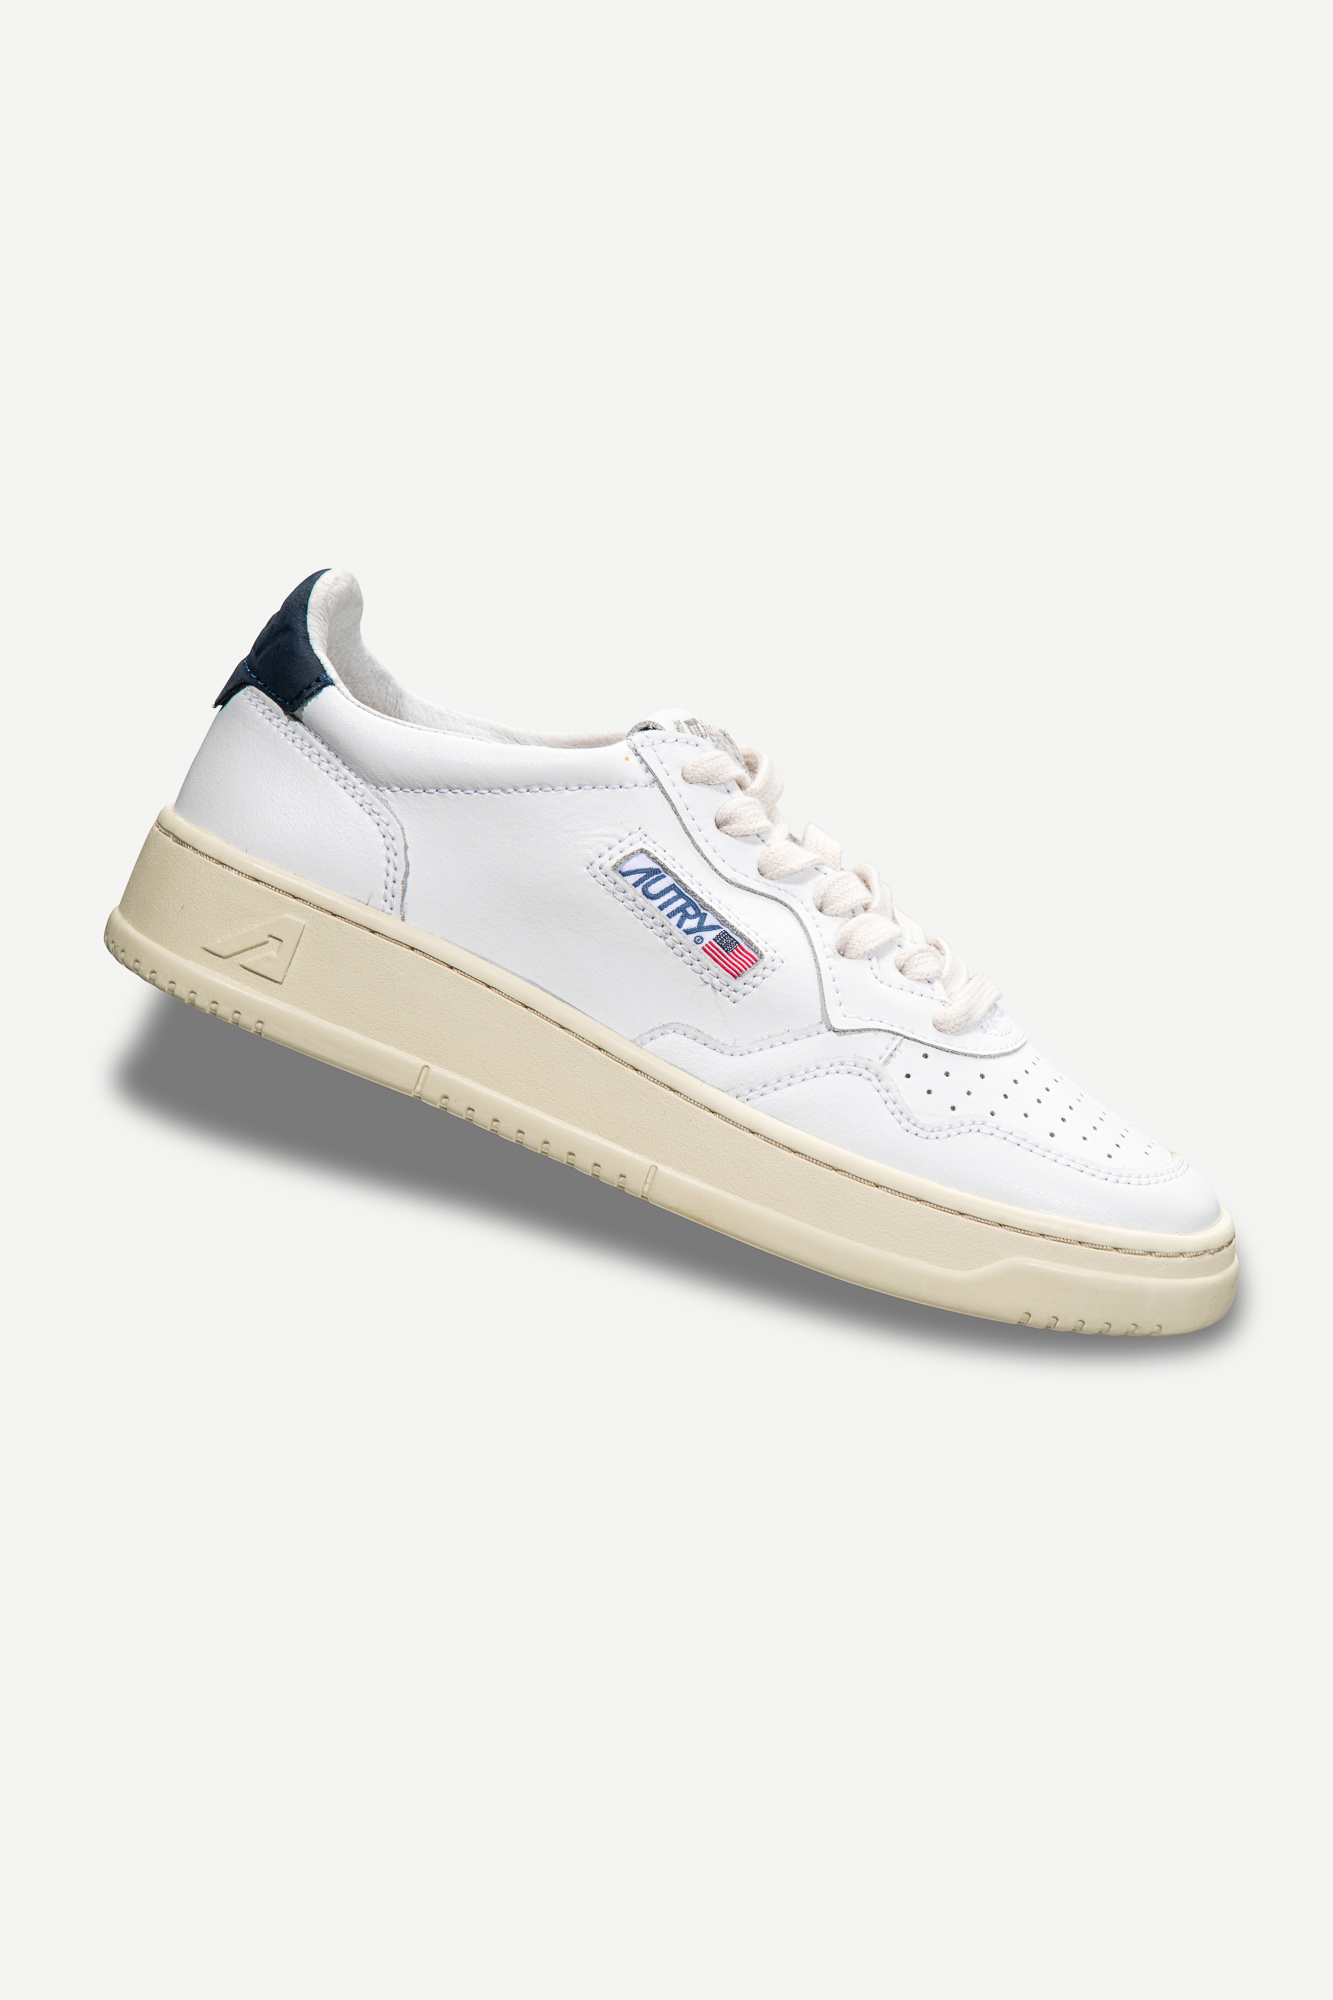 Medalist 01 Low White Navy Leather-1